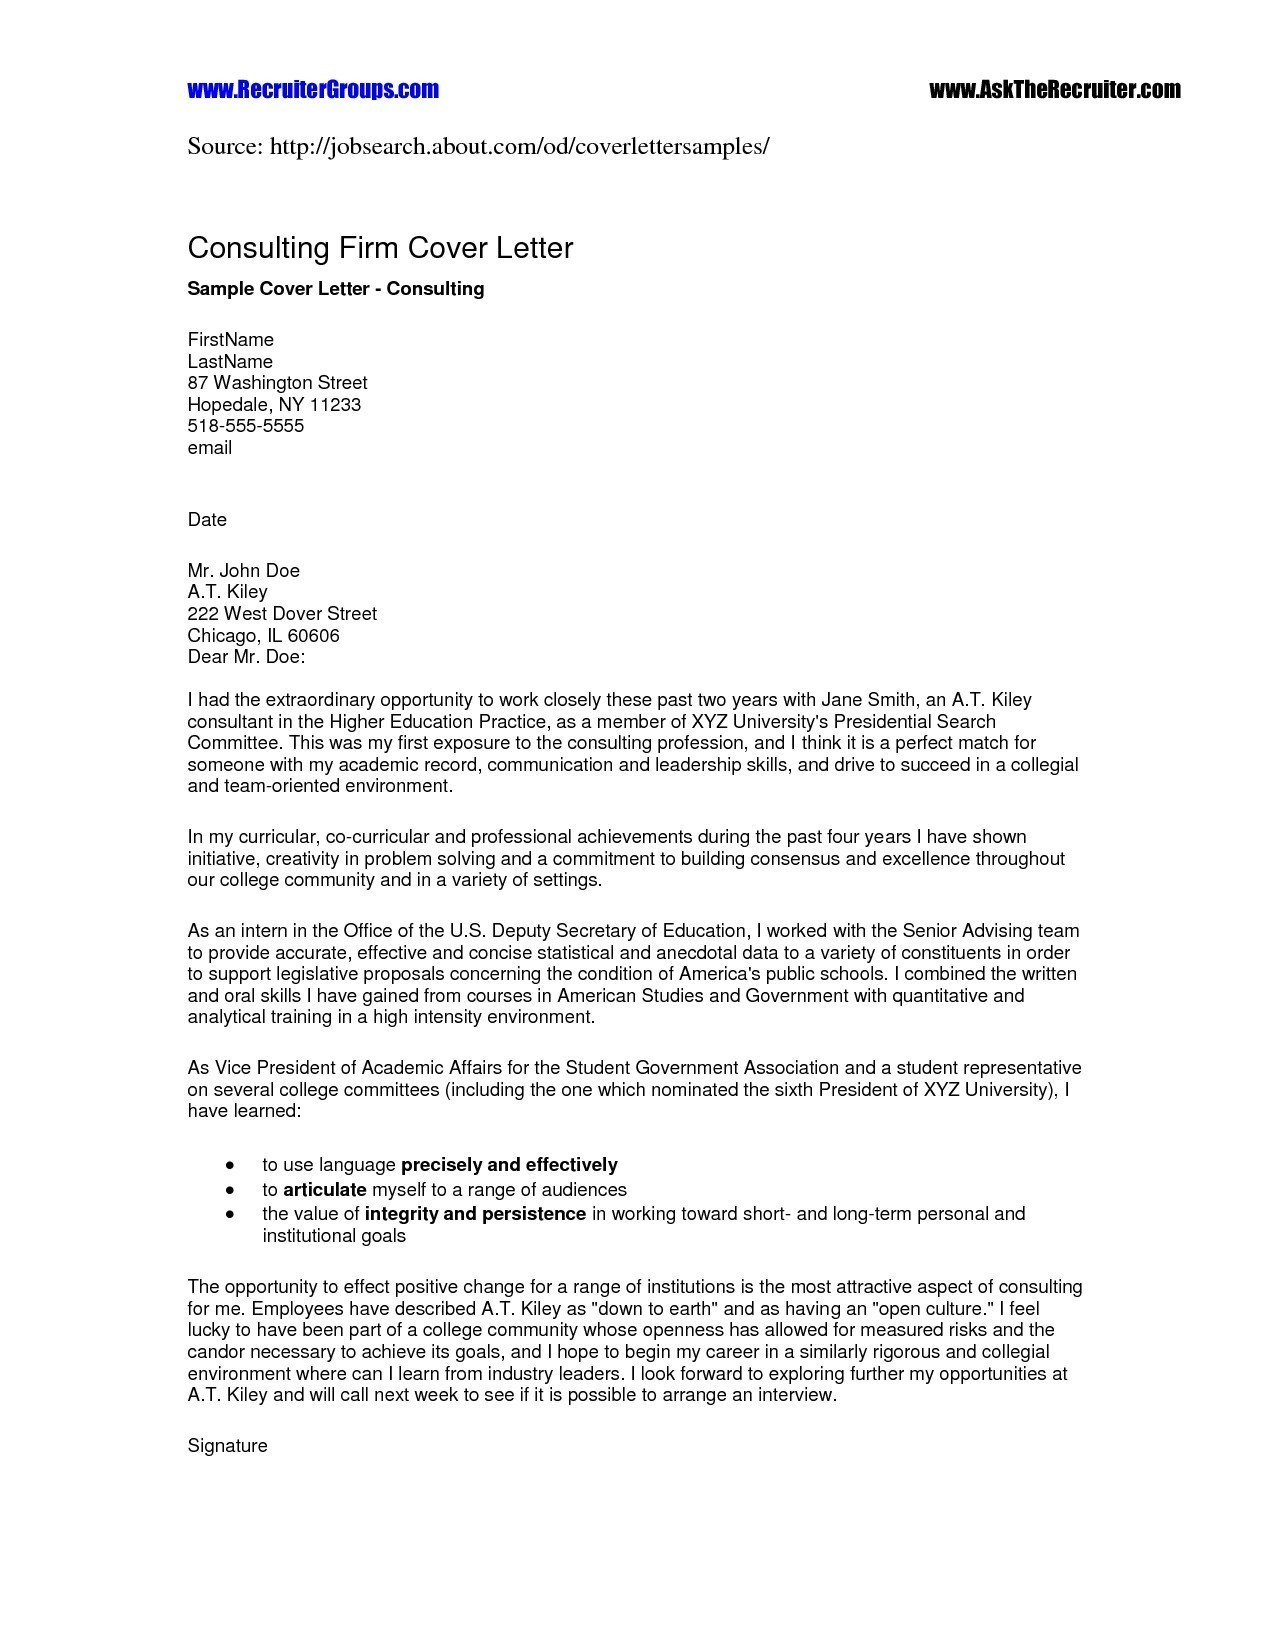 Commission Letter Template - Job Application Letter format Template Copy Cover Letter Template Hr